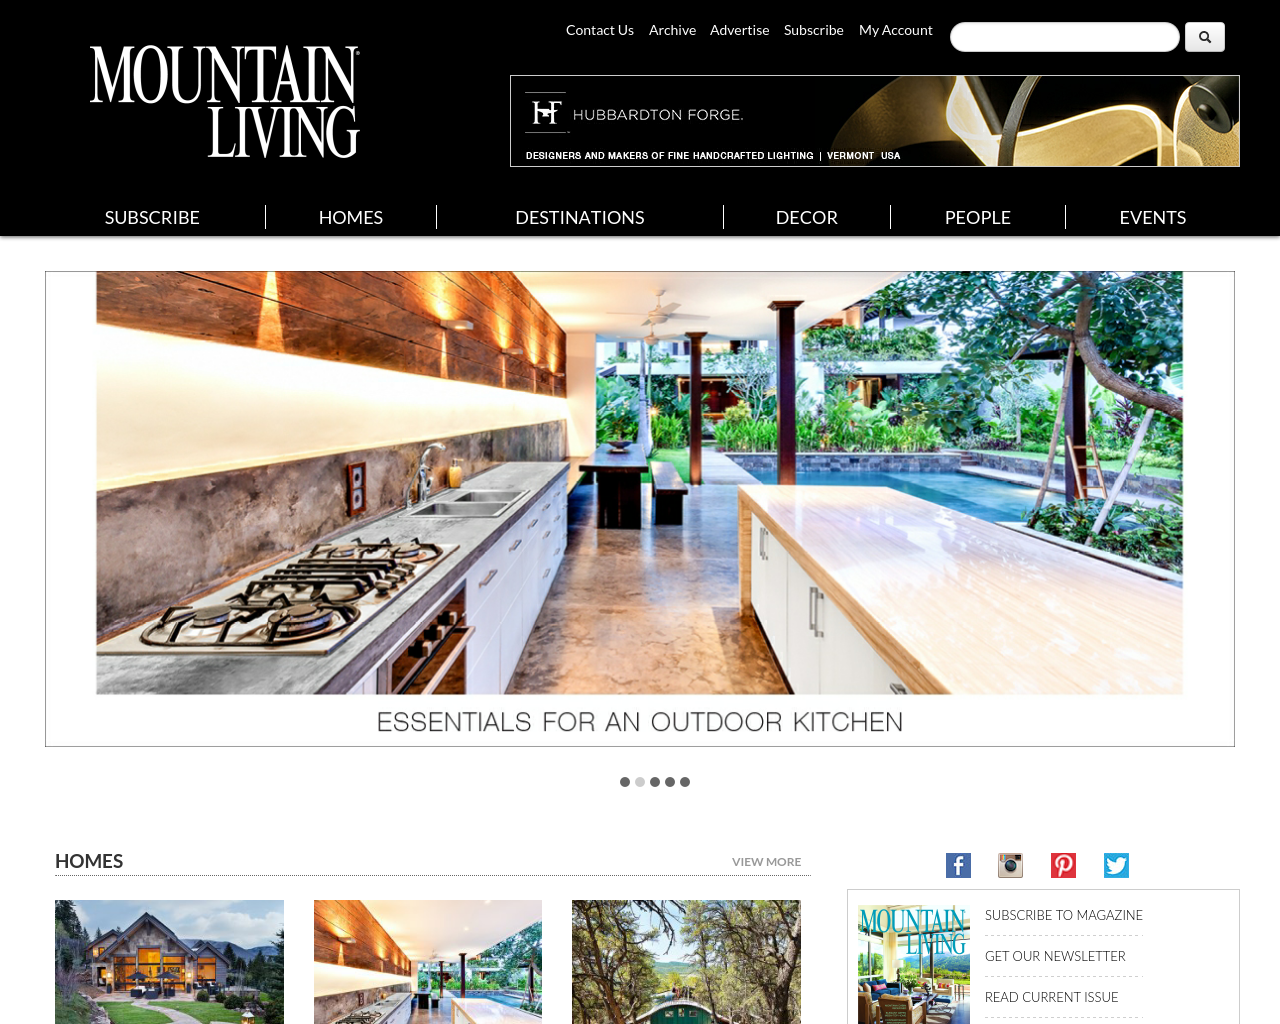 Mountain-Living-Advertising-Reviews-Pricing